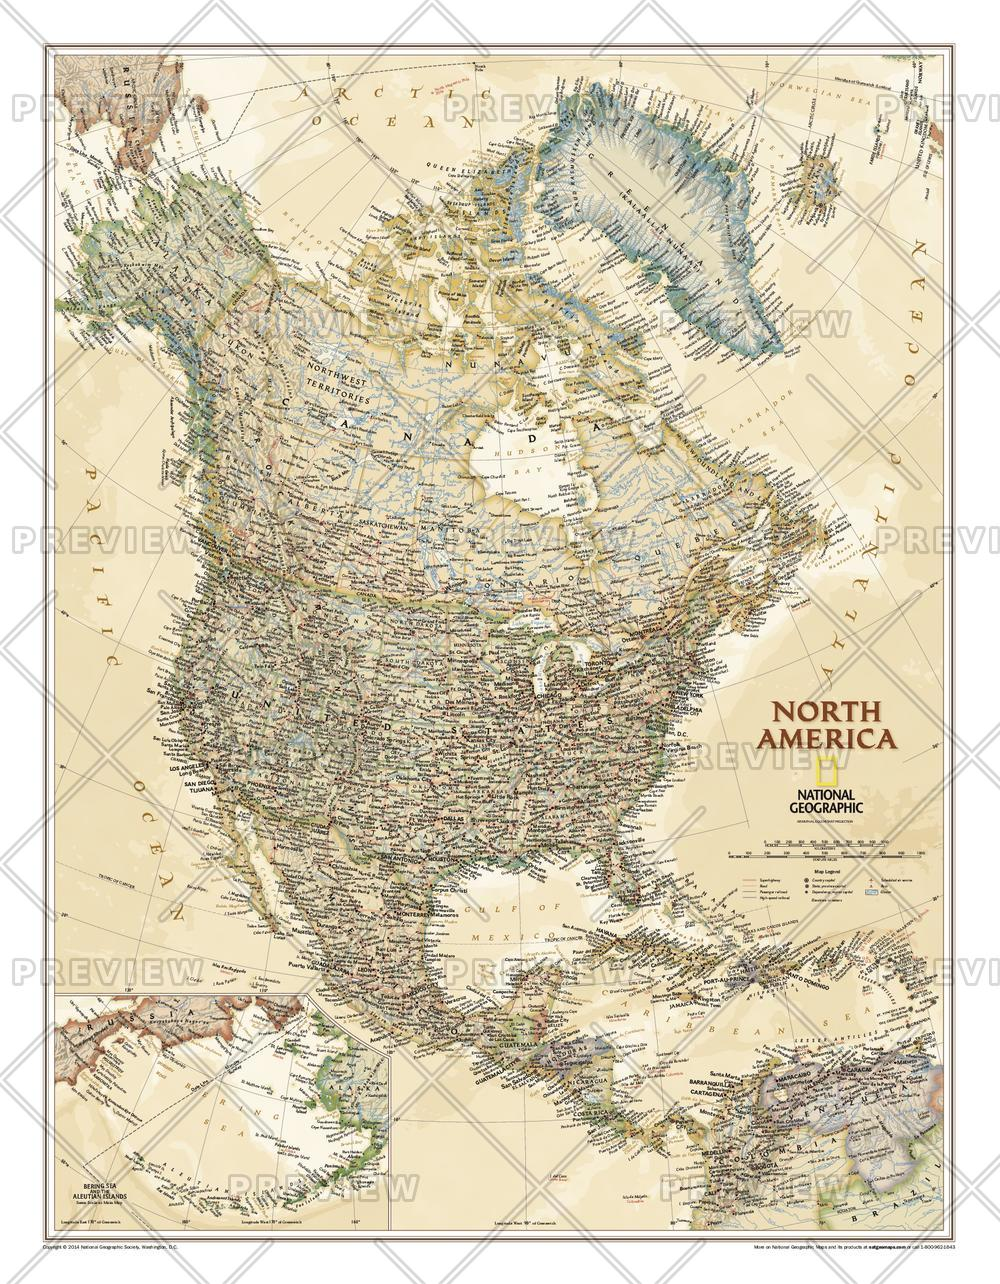 North America Executive on map of north america rail, map of north america water, map of north america agriculture, map of north america food, map of north america refineries, map of north america time zones, map of north america waterways, map of north america auto plants, usa map airports, map china airports, map of north america national parks, map of north america ports, central america airports, map of north america rivers, map of north america cement plants, america's airports, map of north america railway,